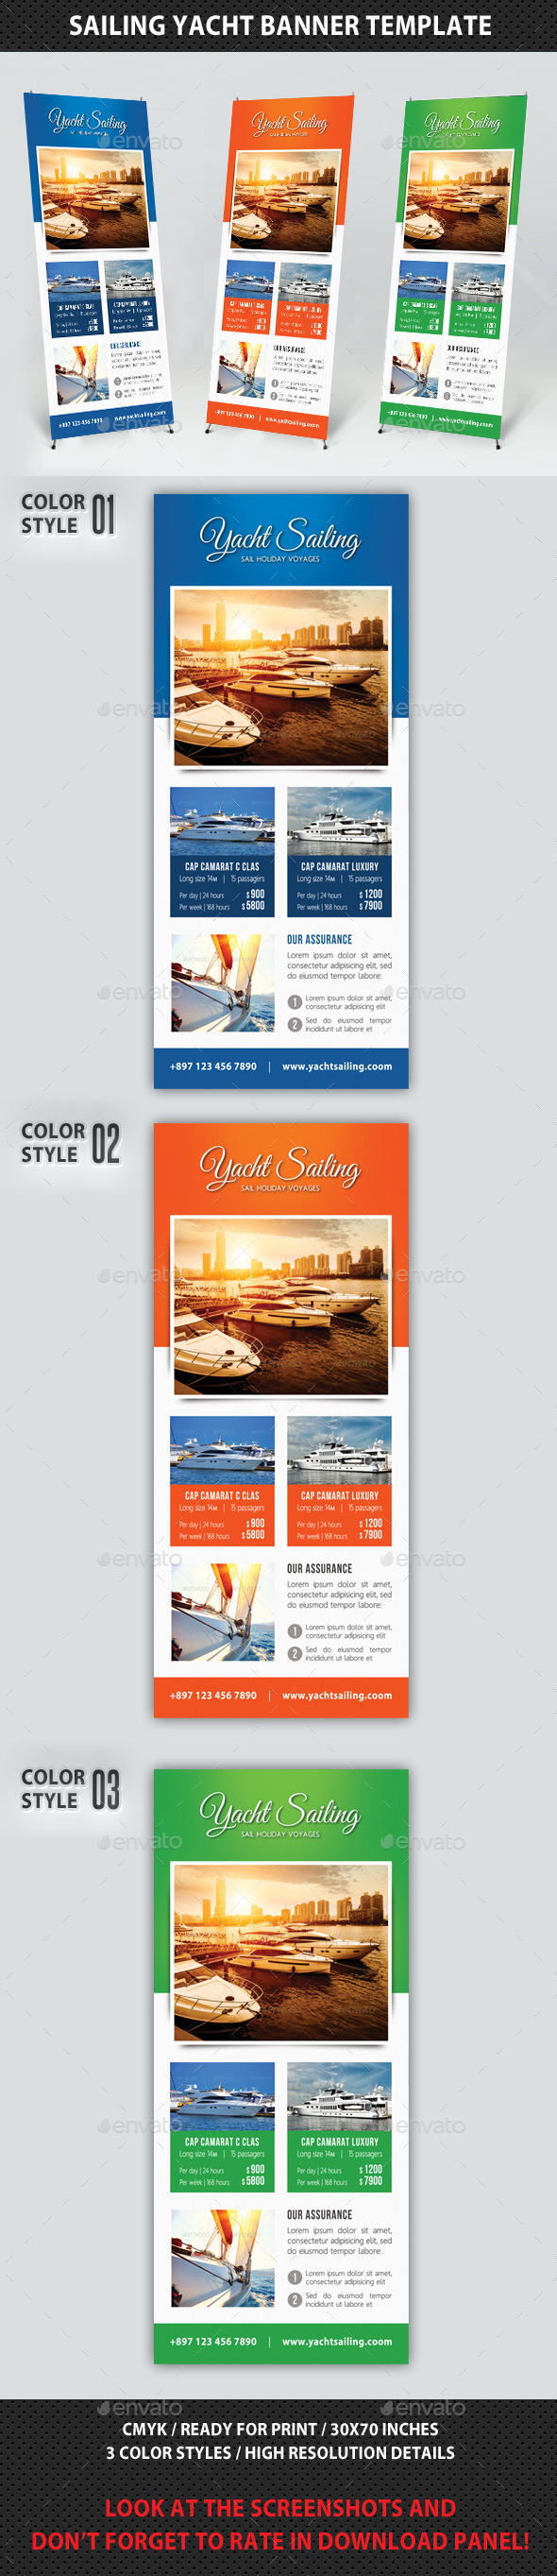 GraphicRiver Sailing Yacht Banner Template 03 10314725